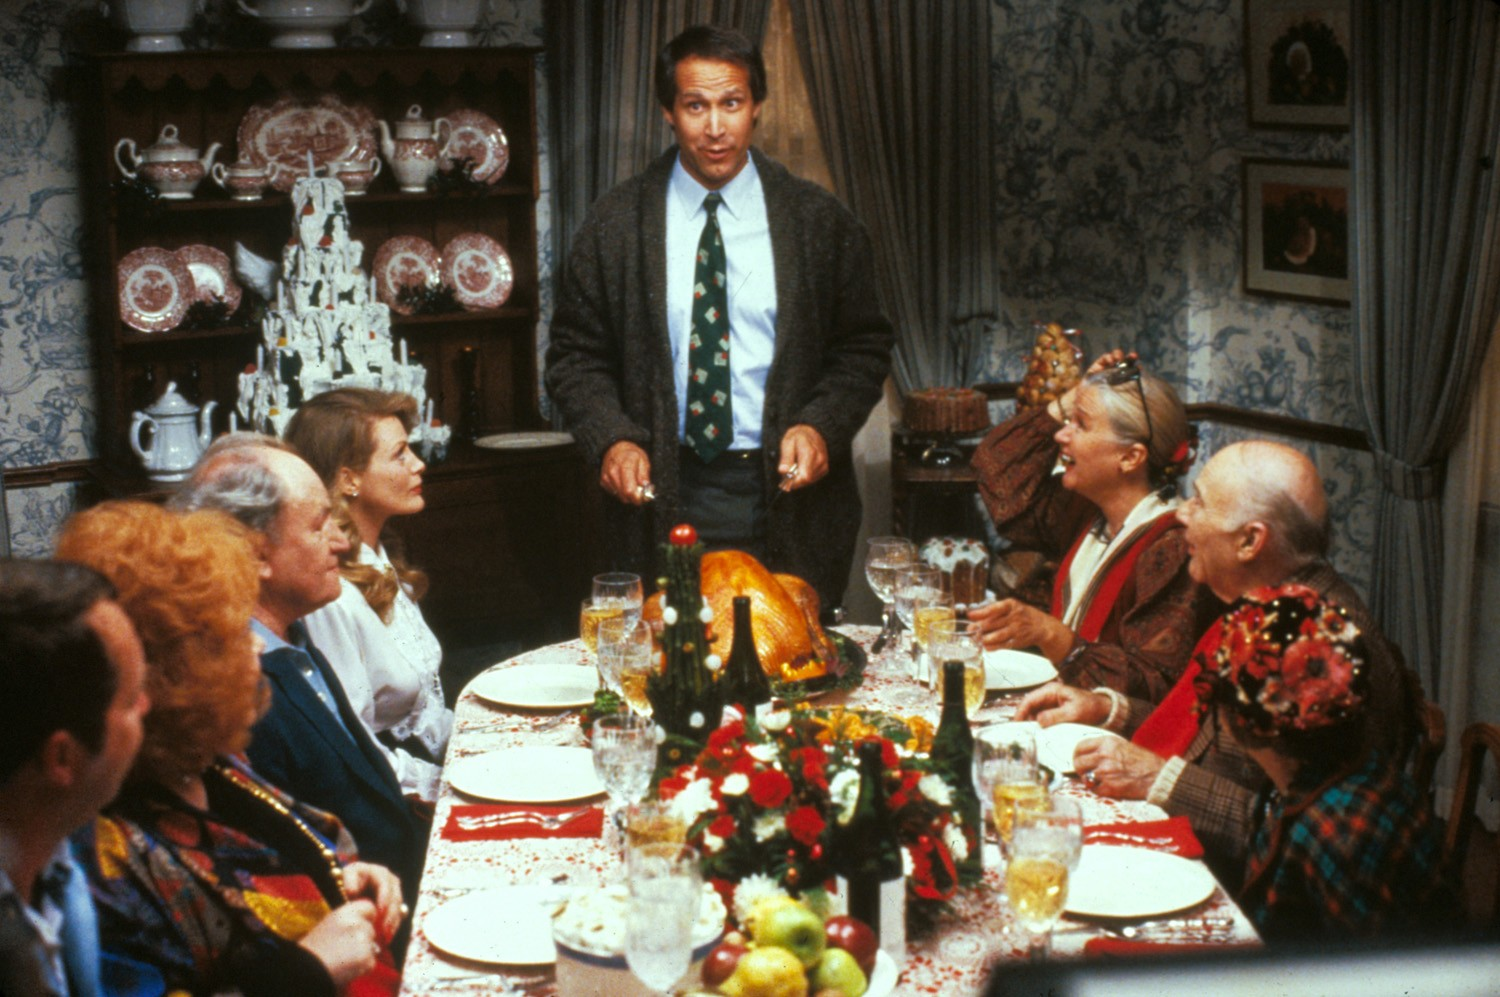 Tips On How To Survive Holiday Family Gatherings